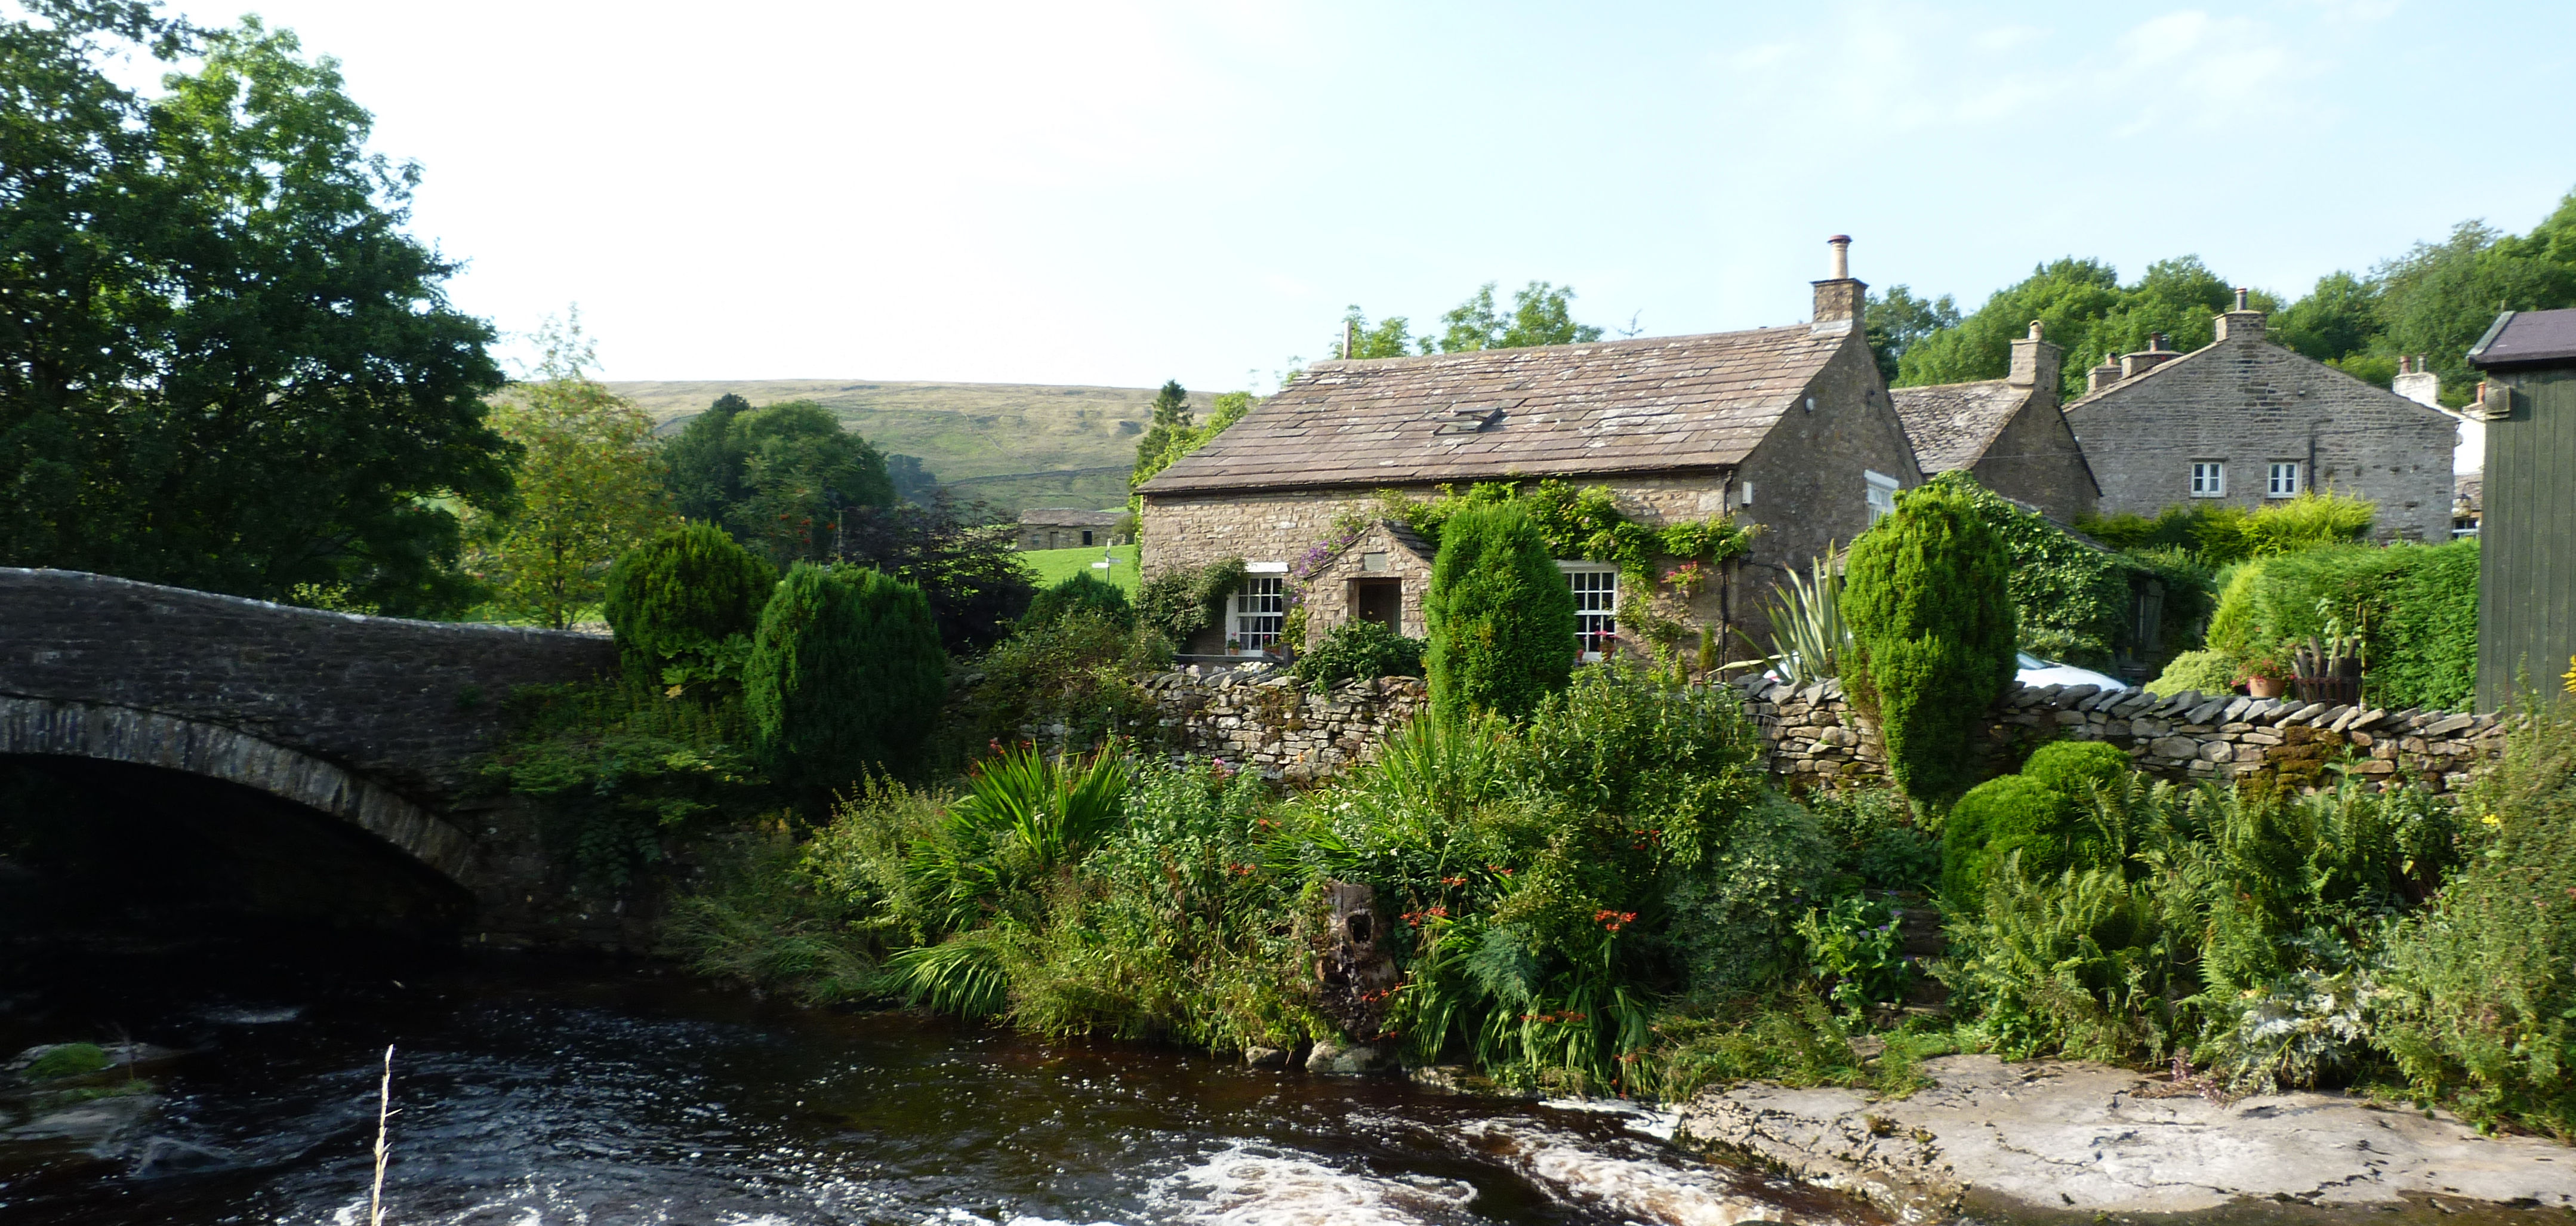 Cowgate, Dentdale